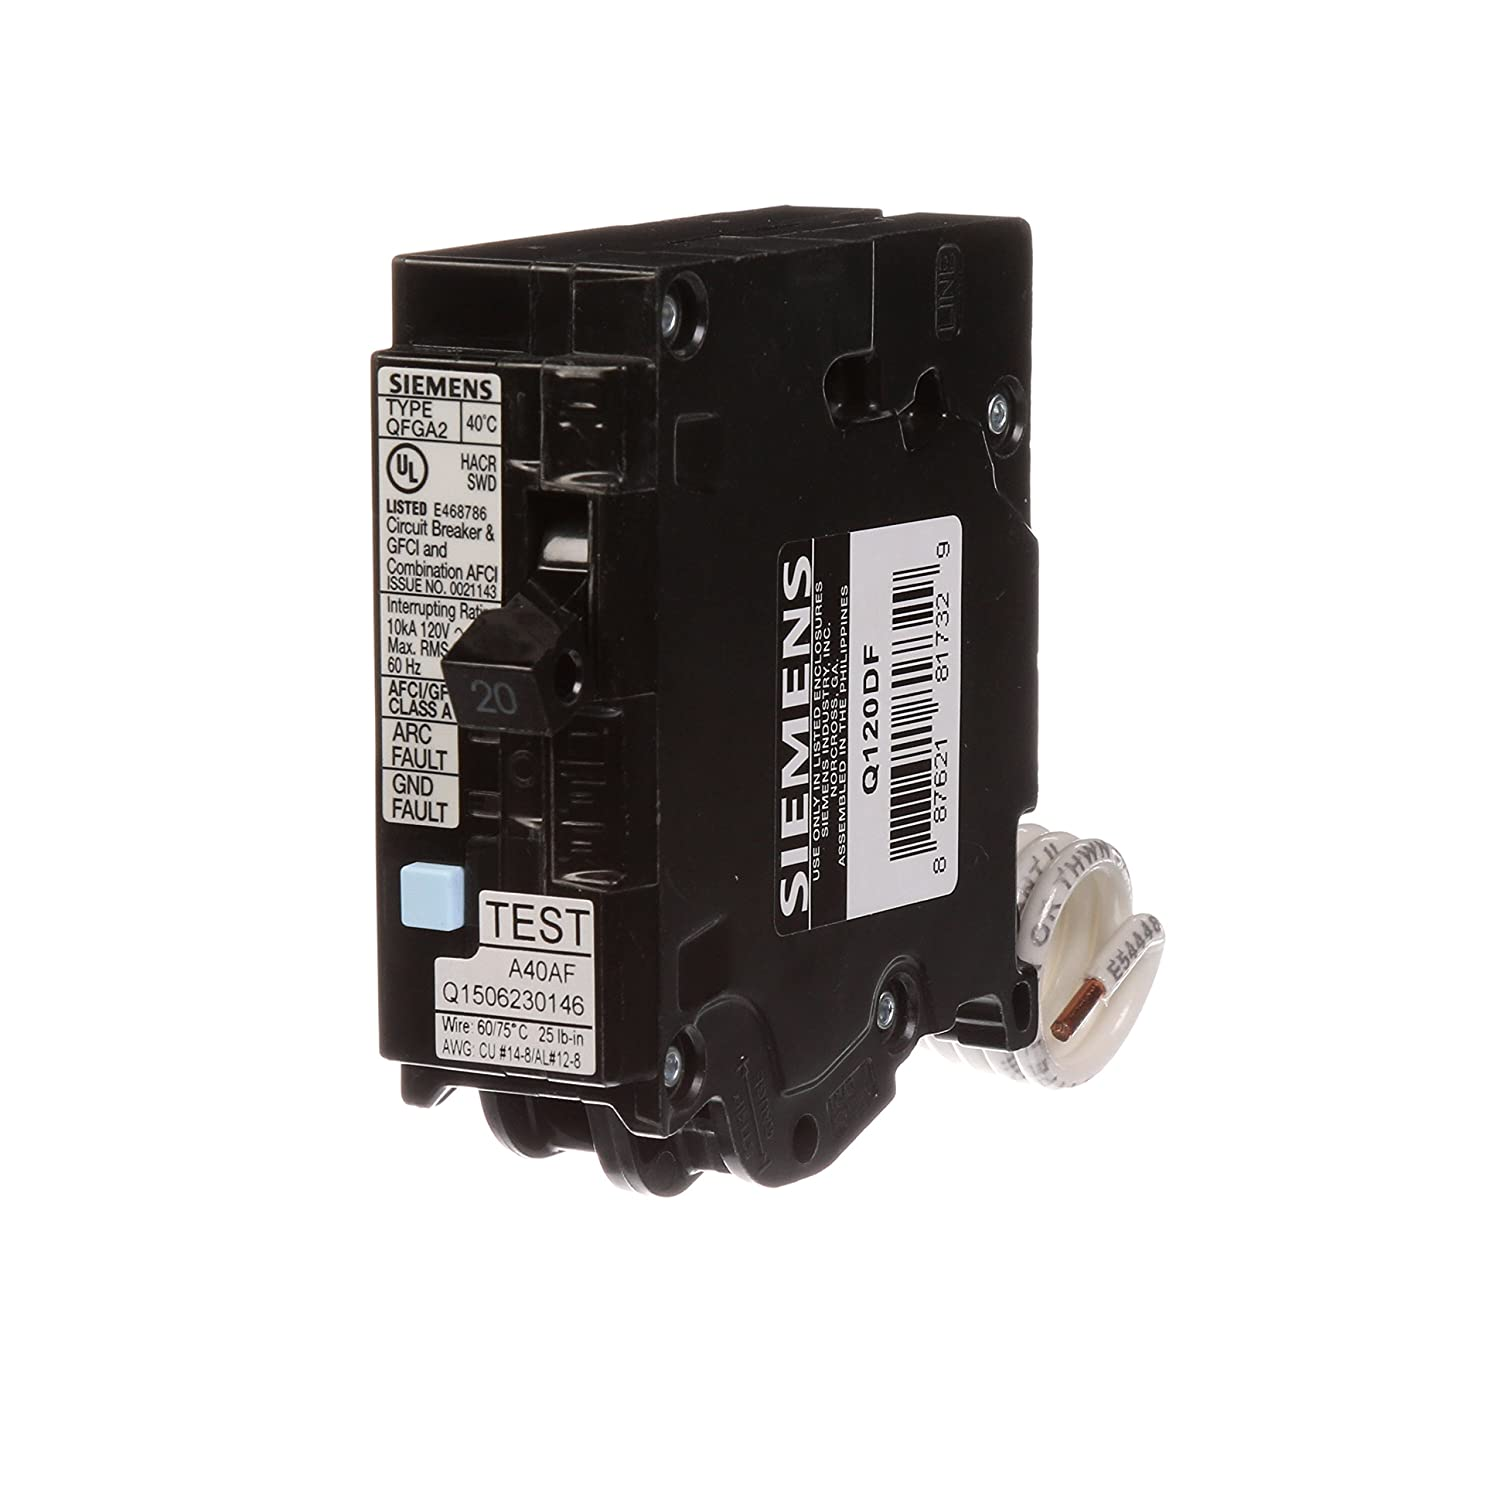 Siemens Q120df 20 Amp Afci Gfci Dual Function Circuit Breaker Plug Breakers Load Centers Fuses Miniature On Center Style